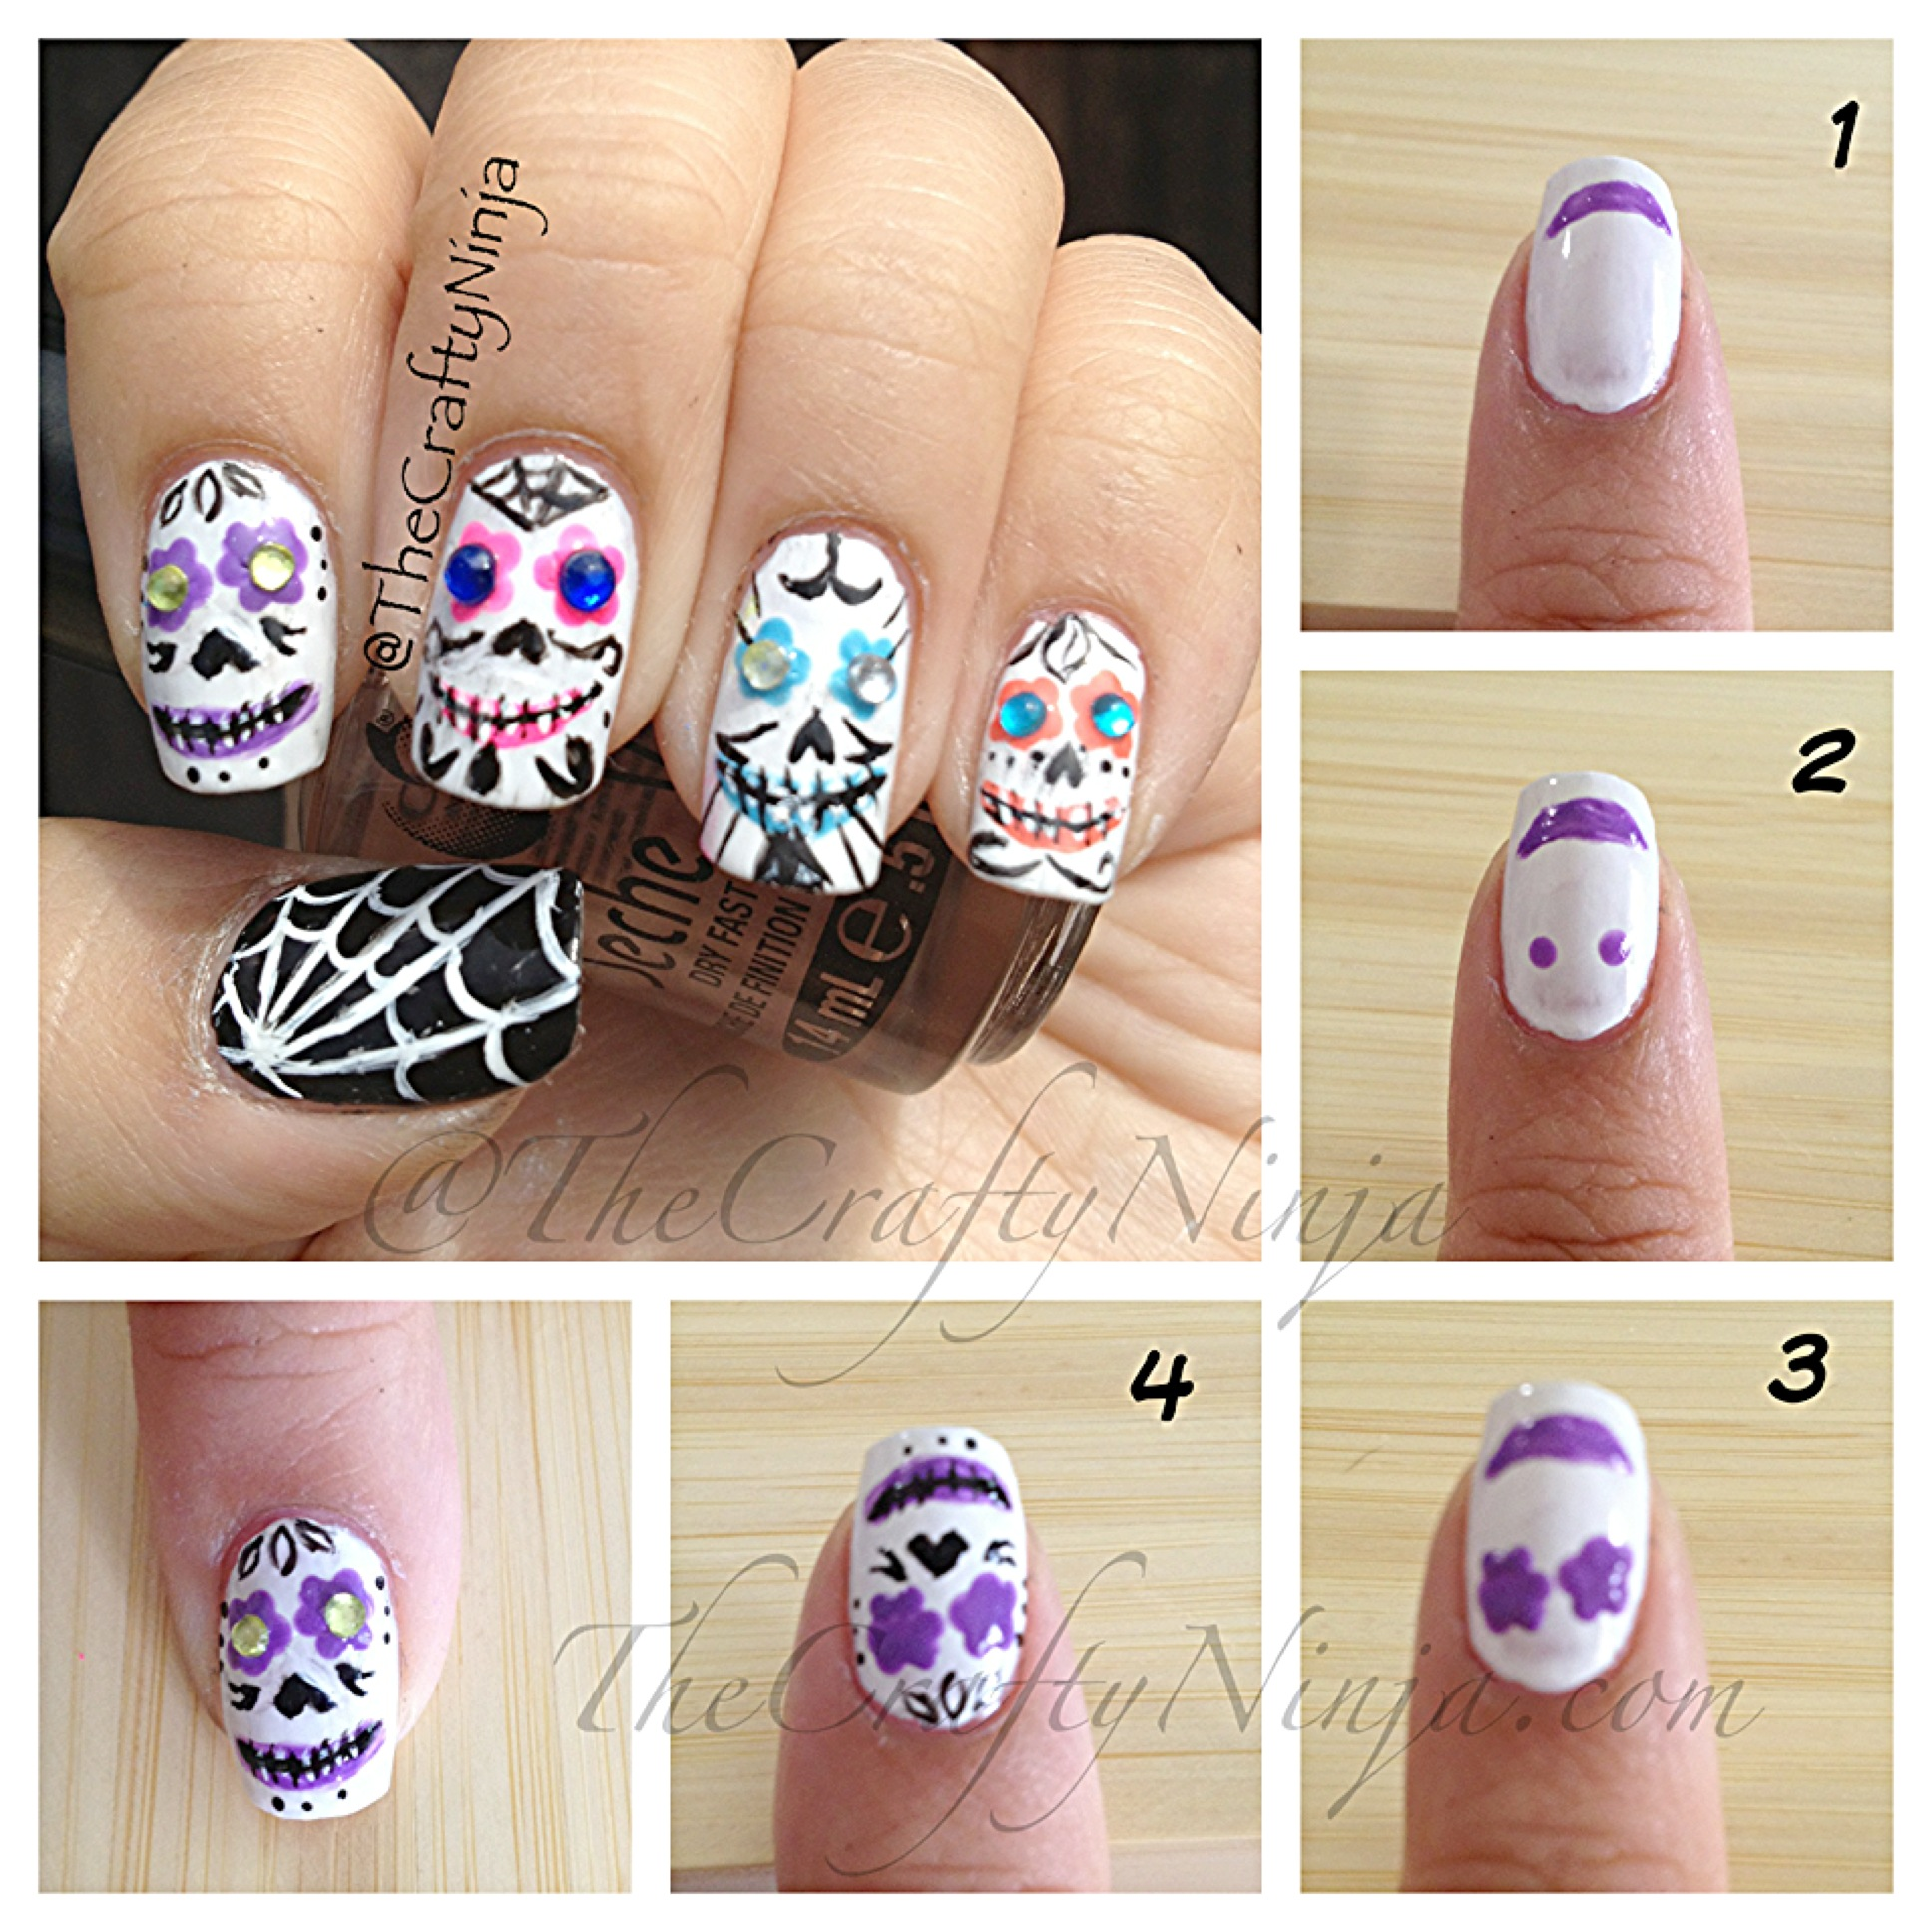 Walgreens Halloween Nail Polish: Halloween Nail Decals Walgreens